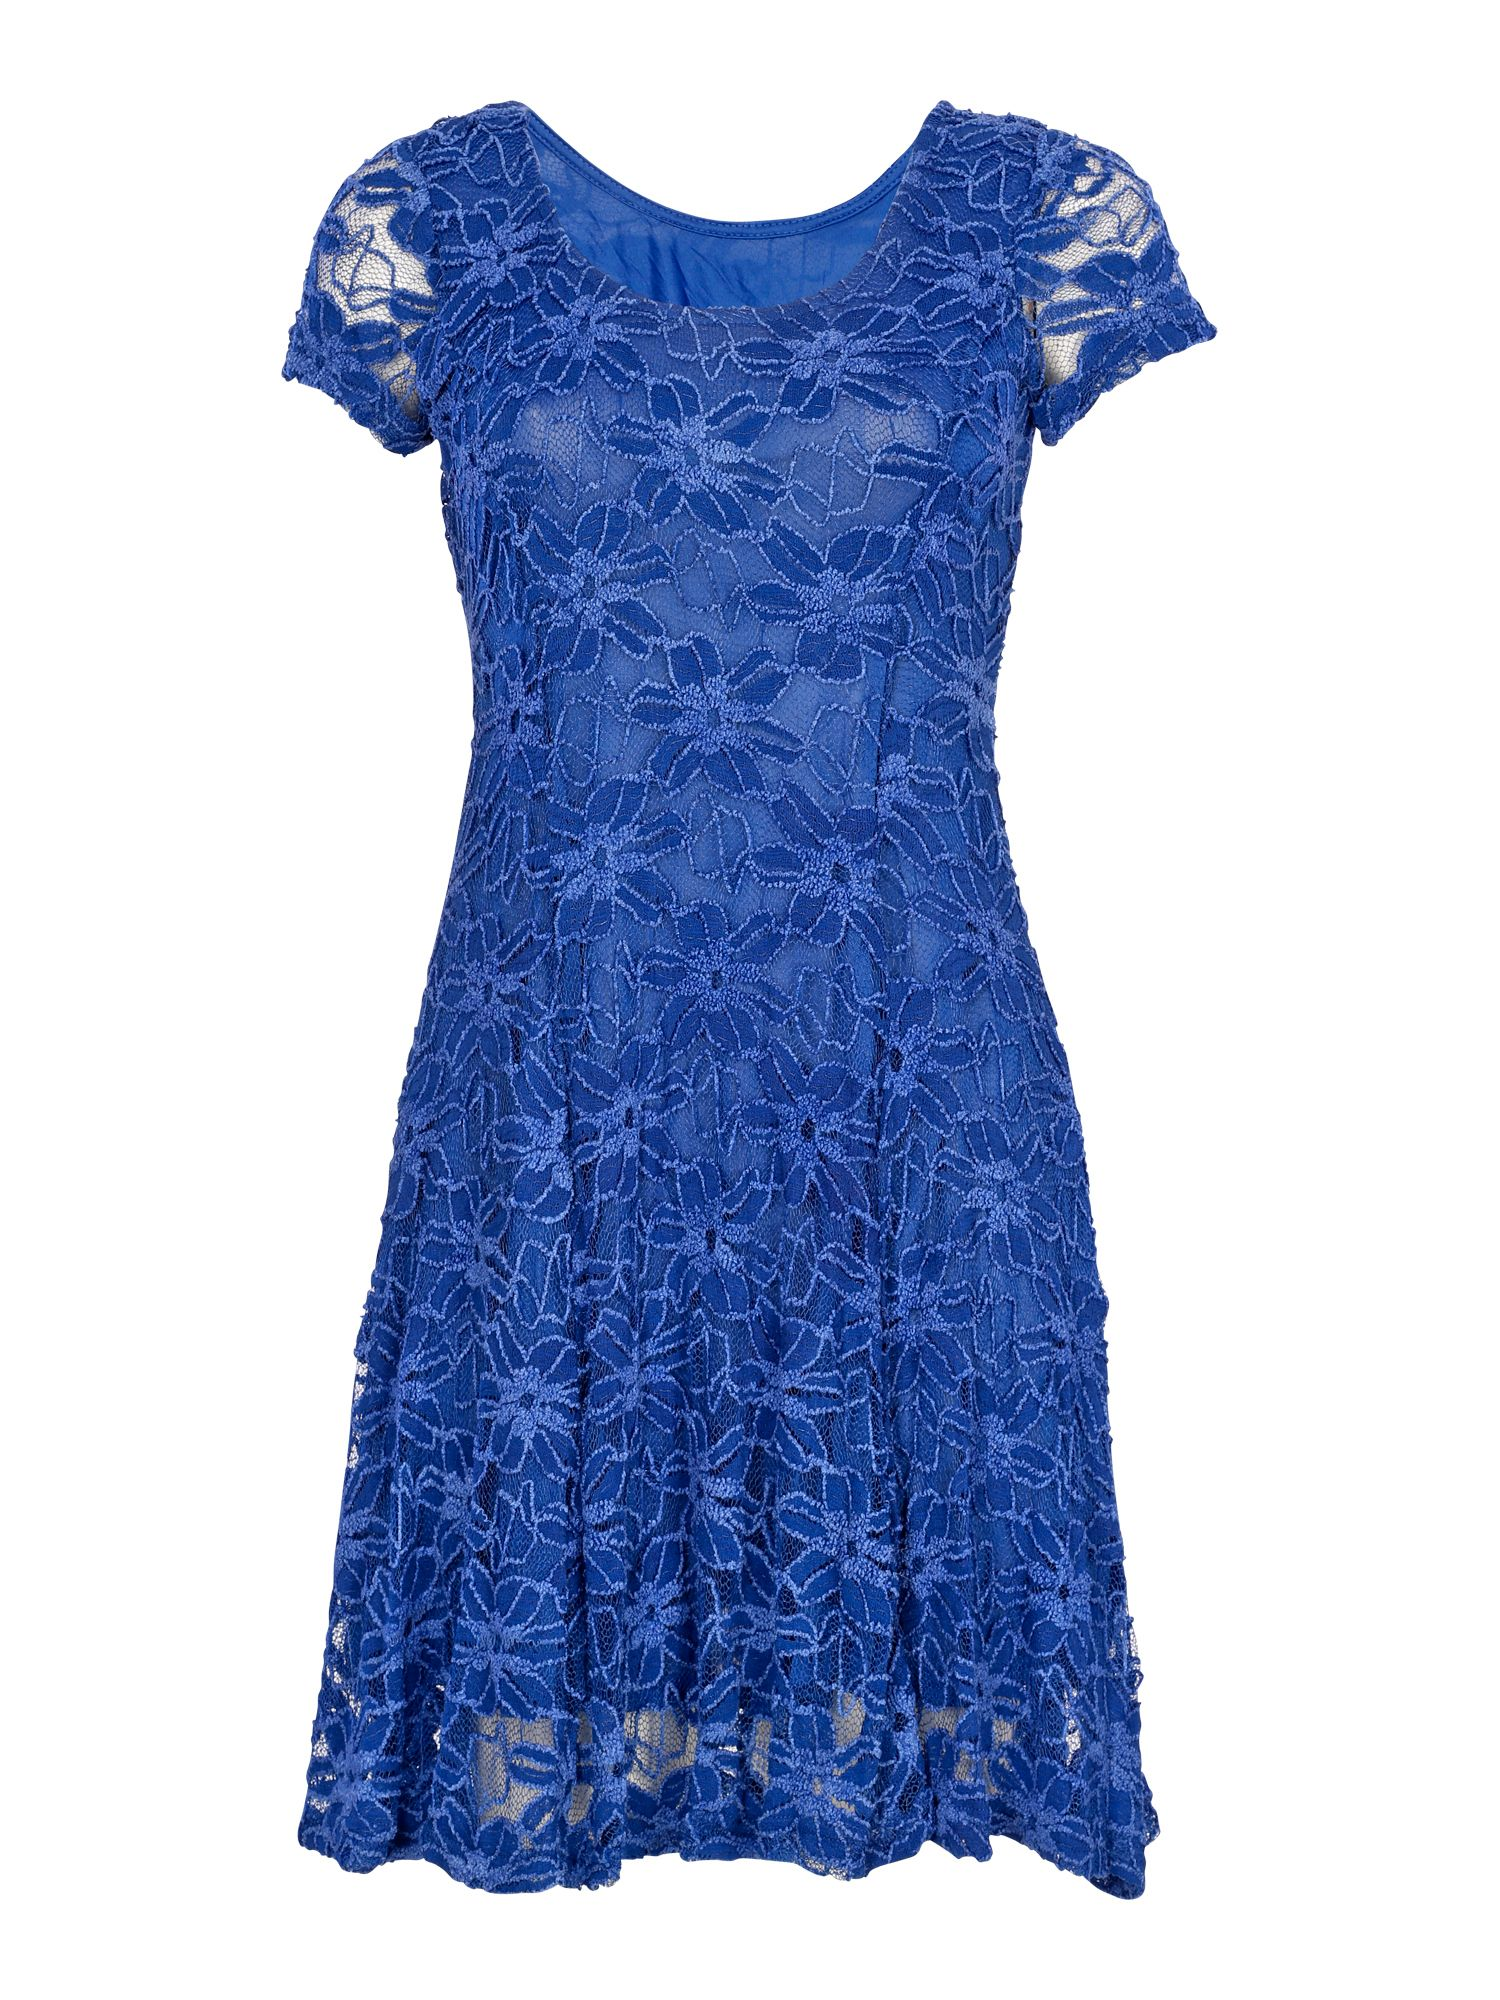 Lace cap sleeved dress